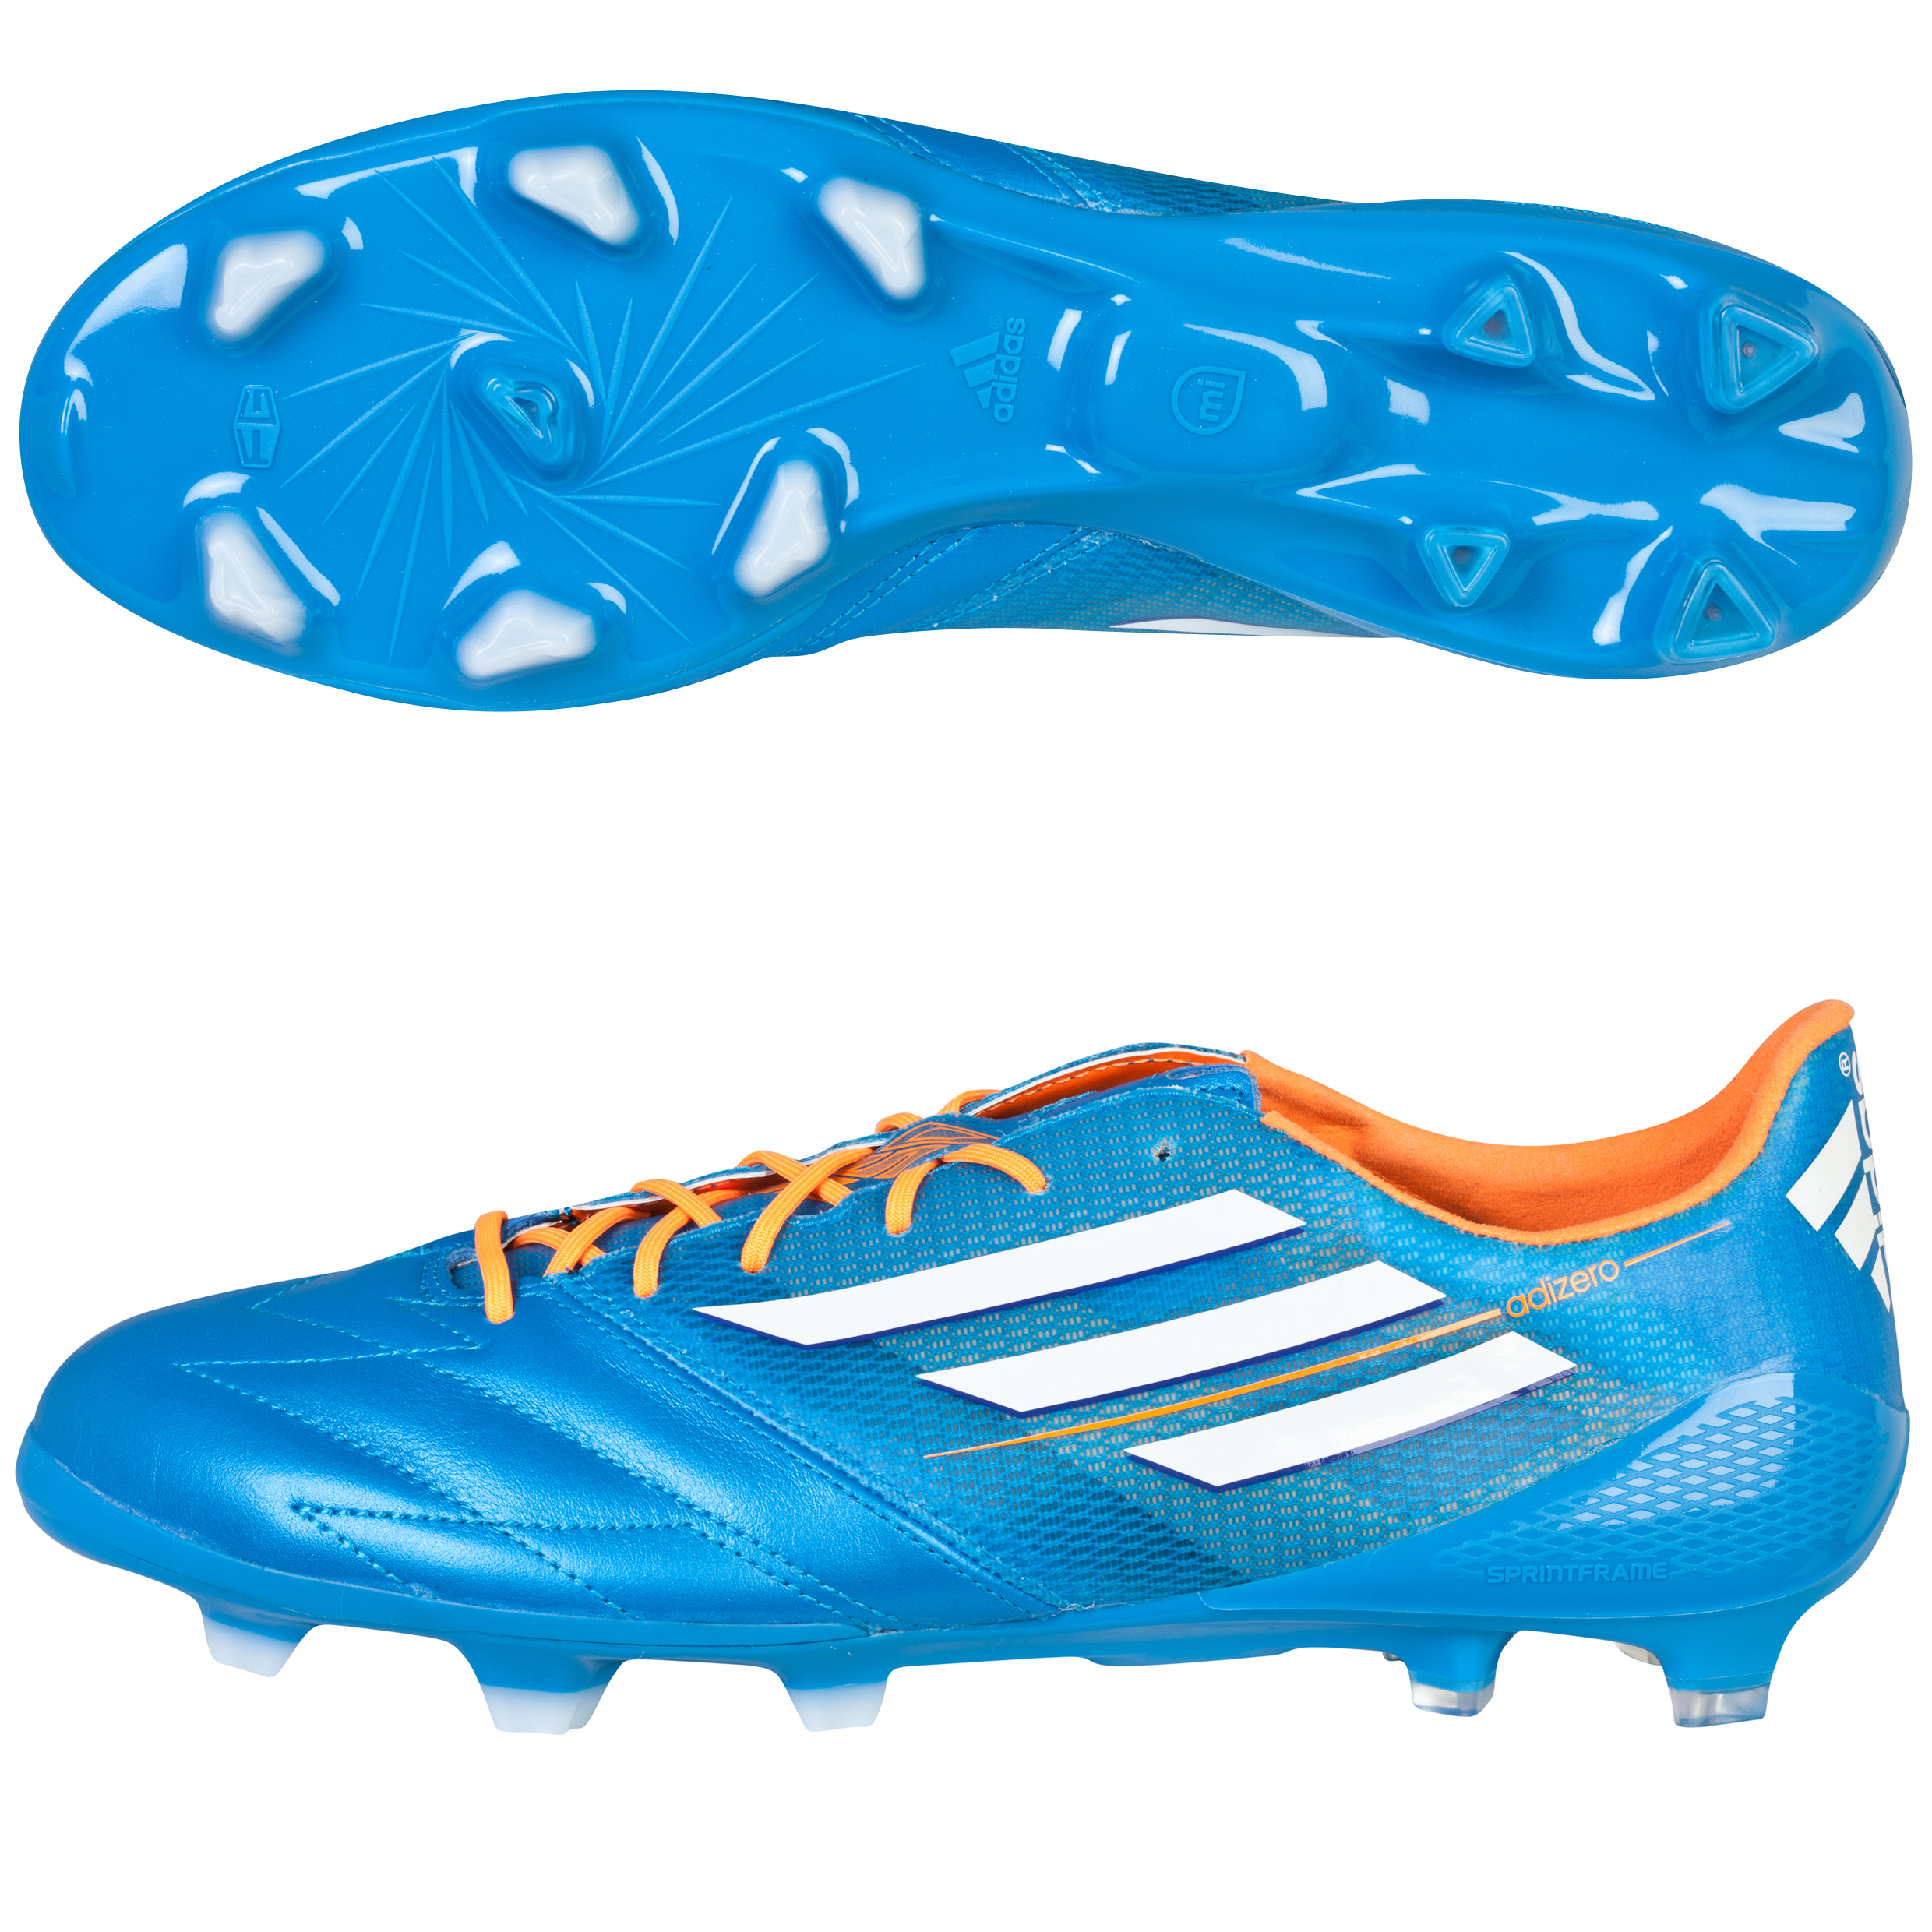 F50 adiZero TRX Leather FG Blue